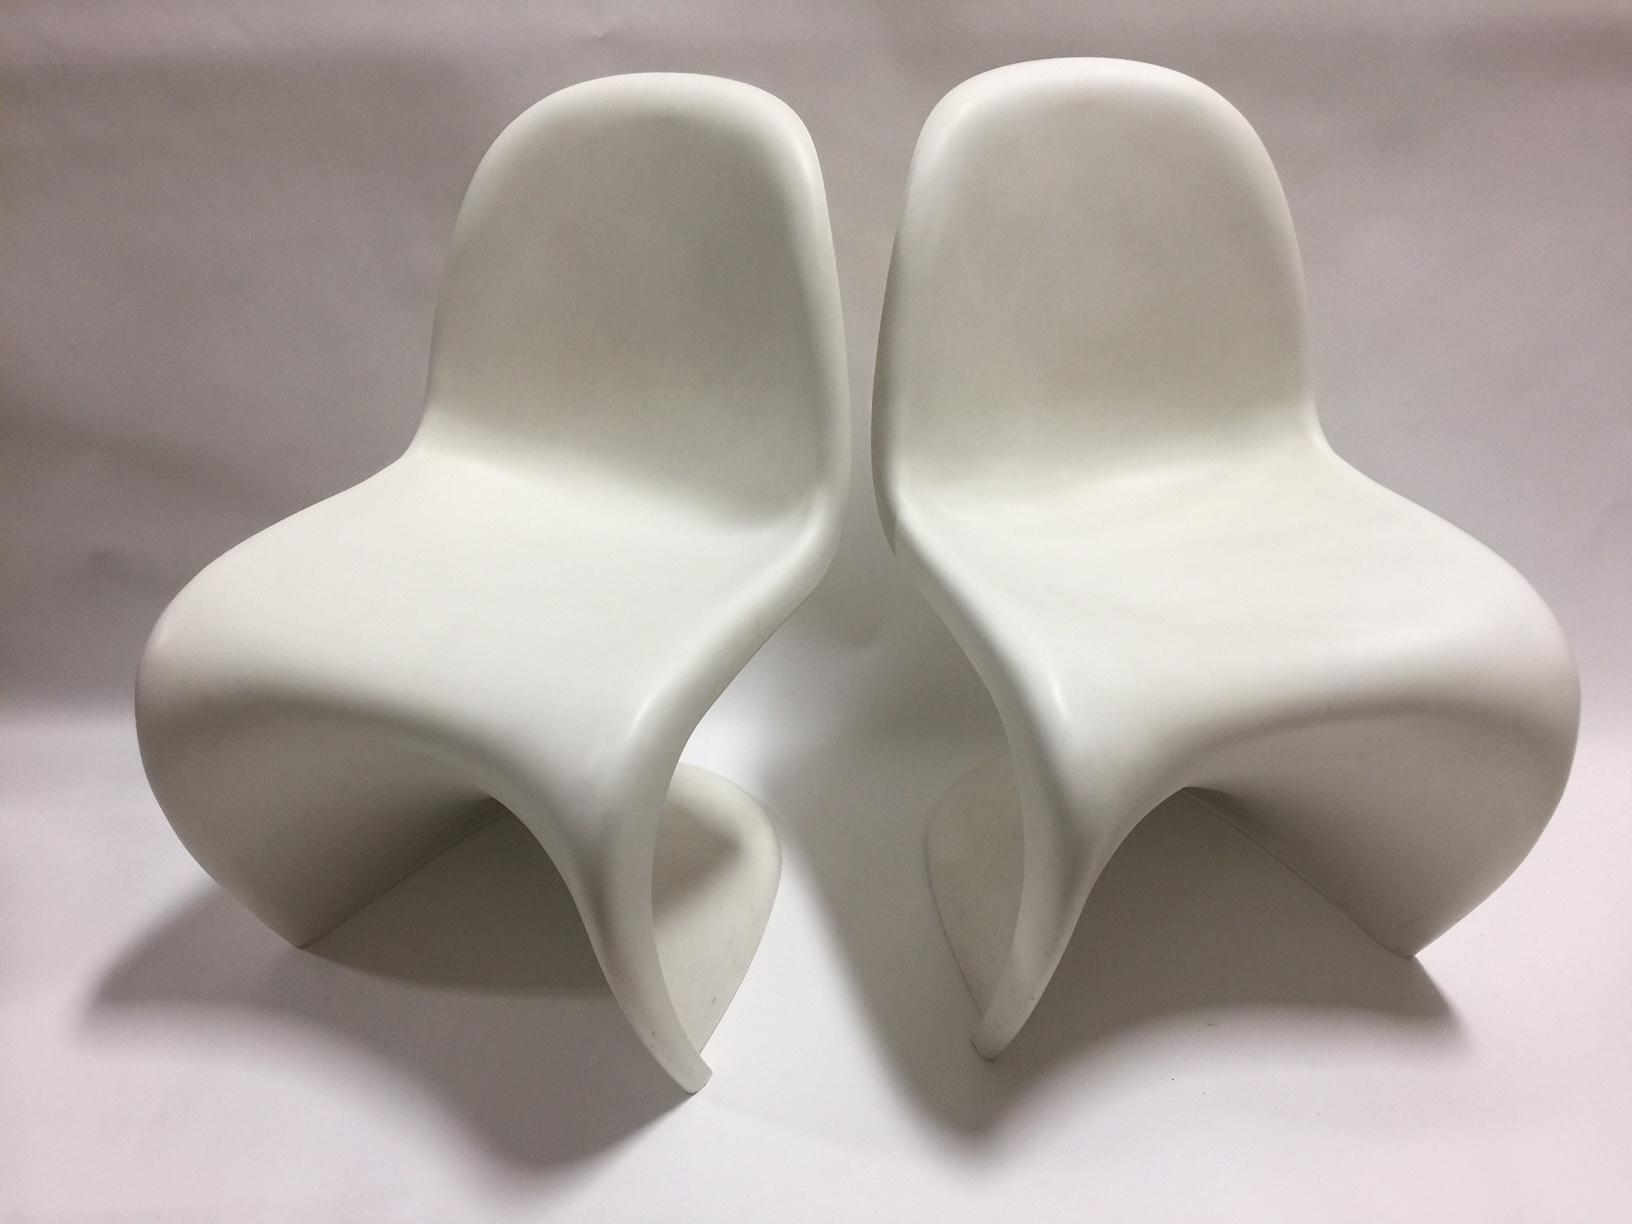 Plastic 4 Vitra Panton S Chairs In White   Set Of 4 For Sale   Image